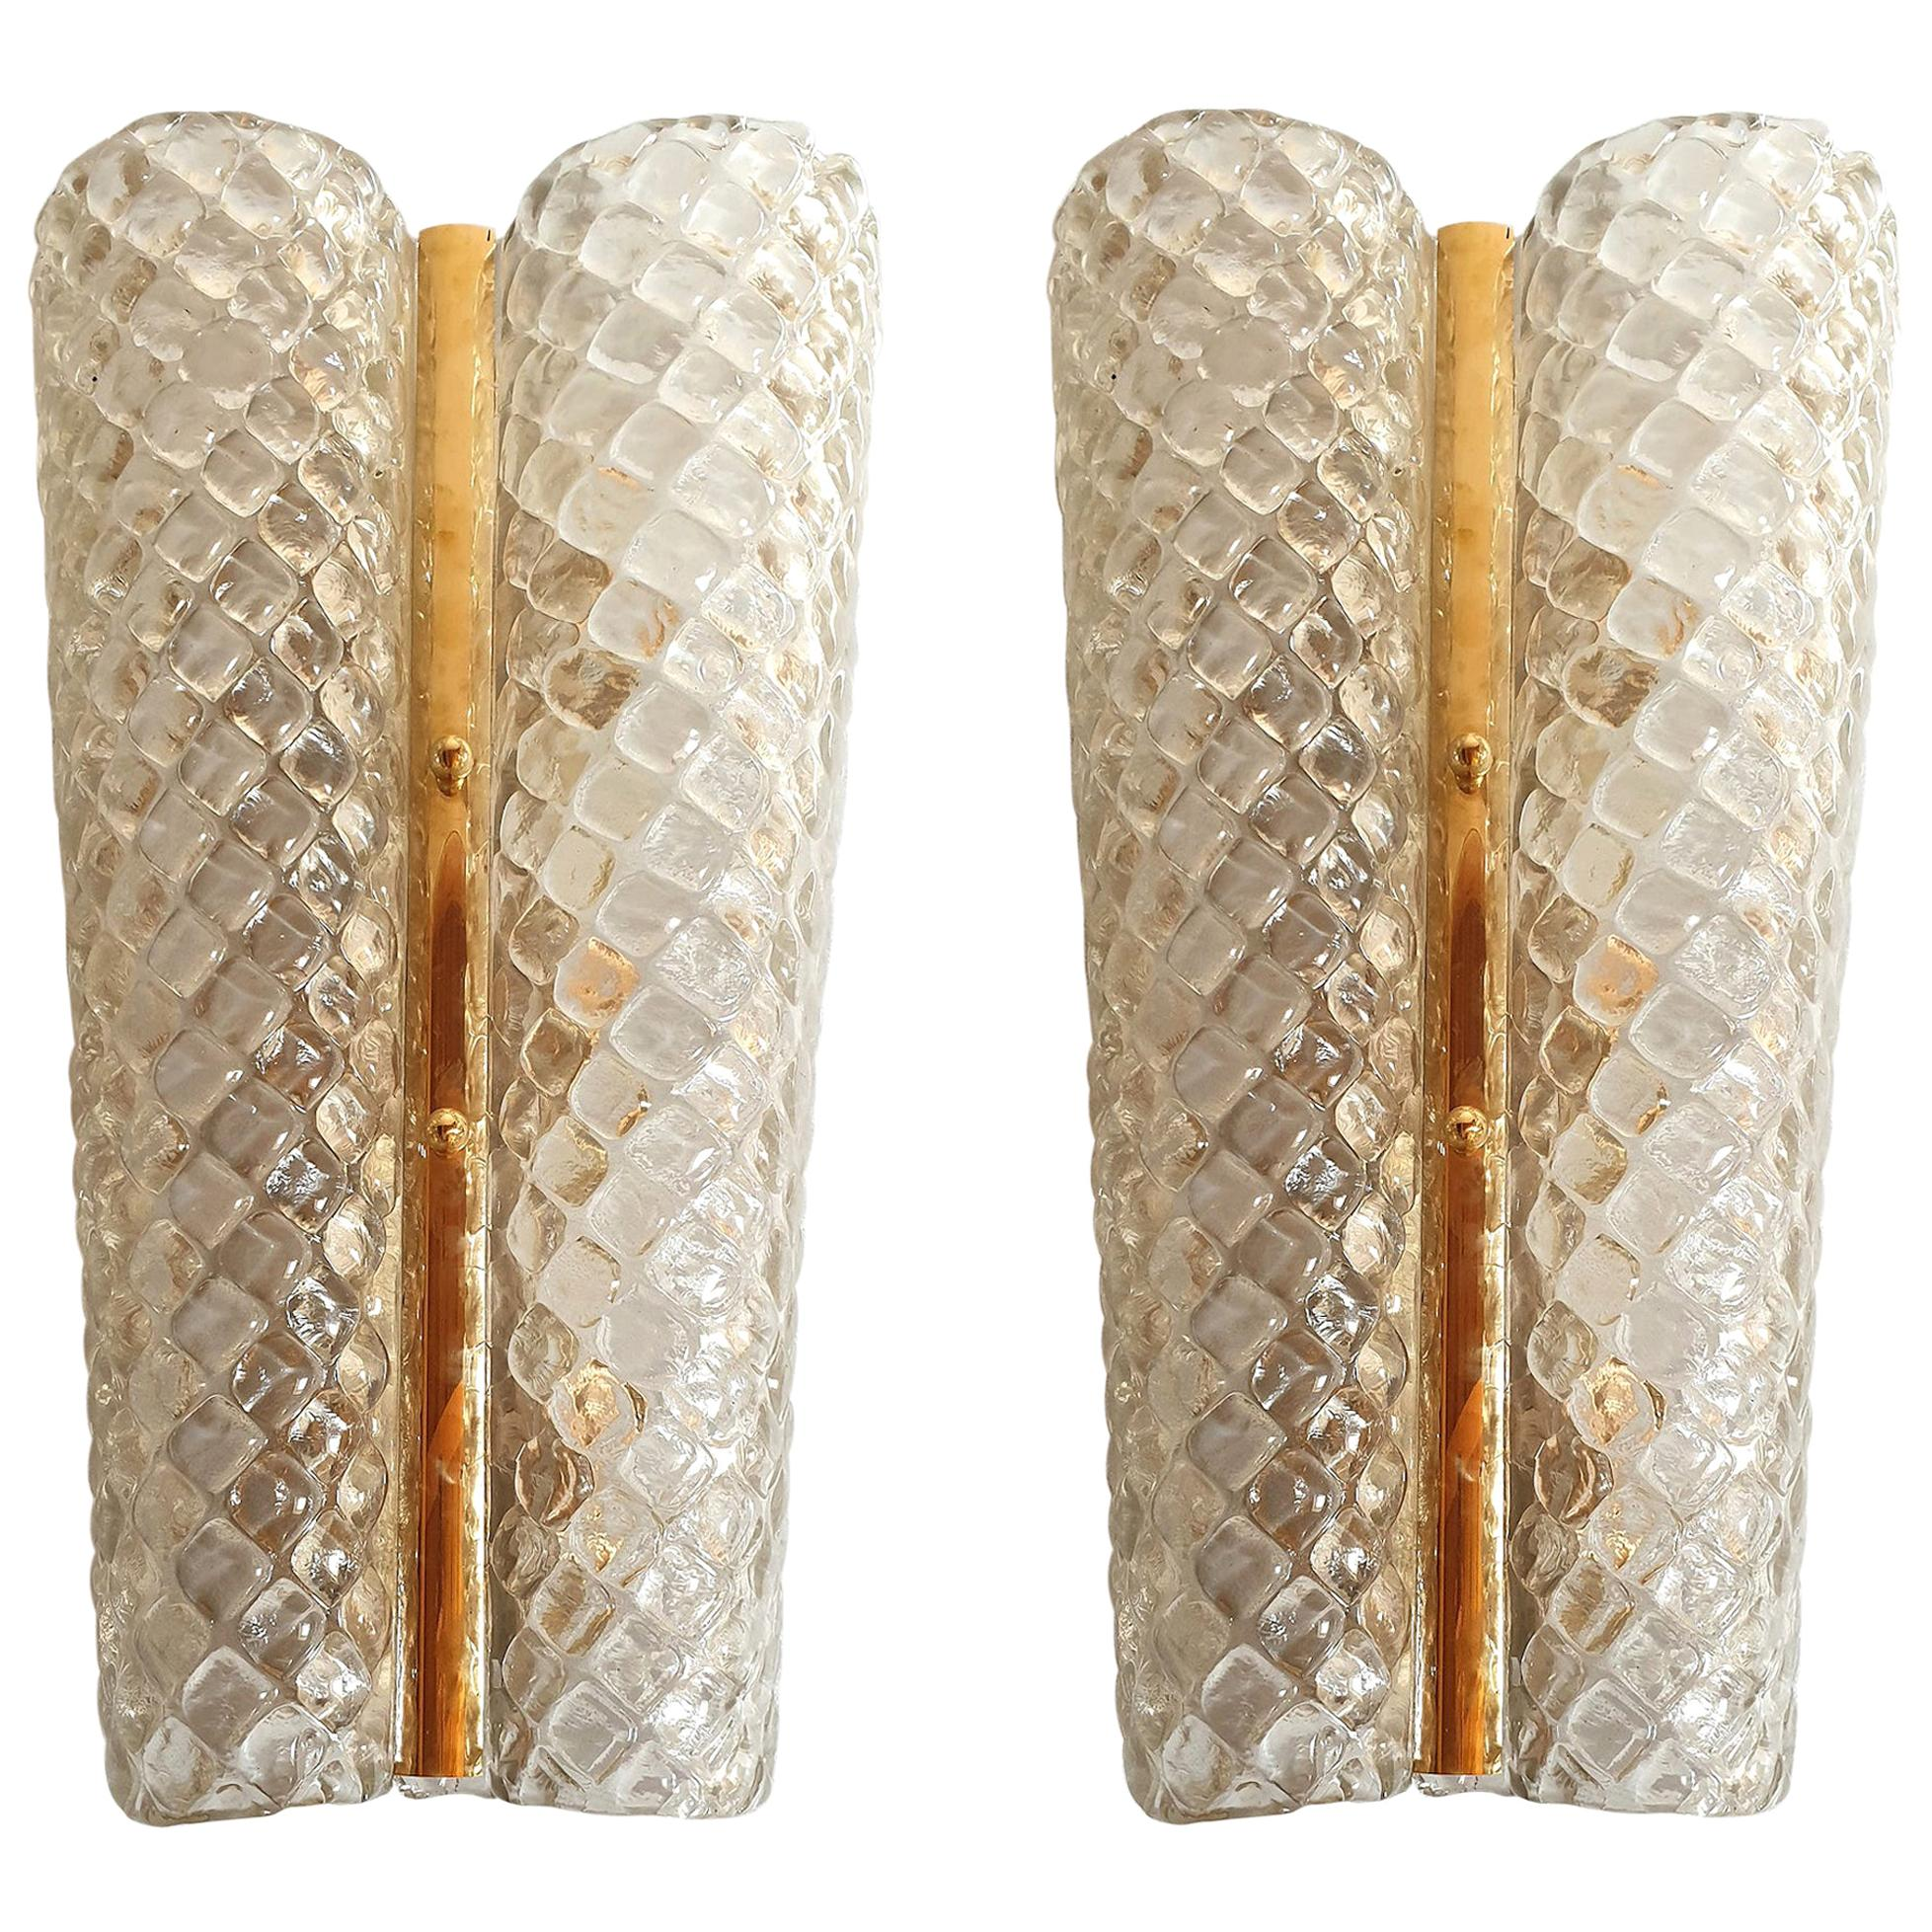 Large Mid-Century Modern Murano Clear Glass & Brass Sconces Italy, 1960, 2 Pairs